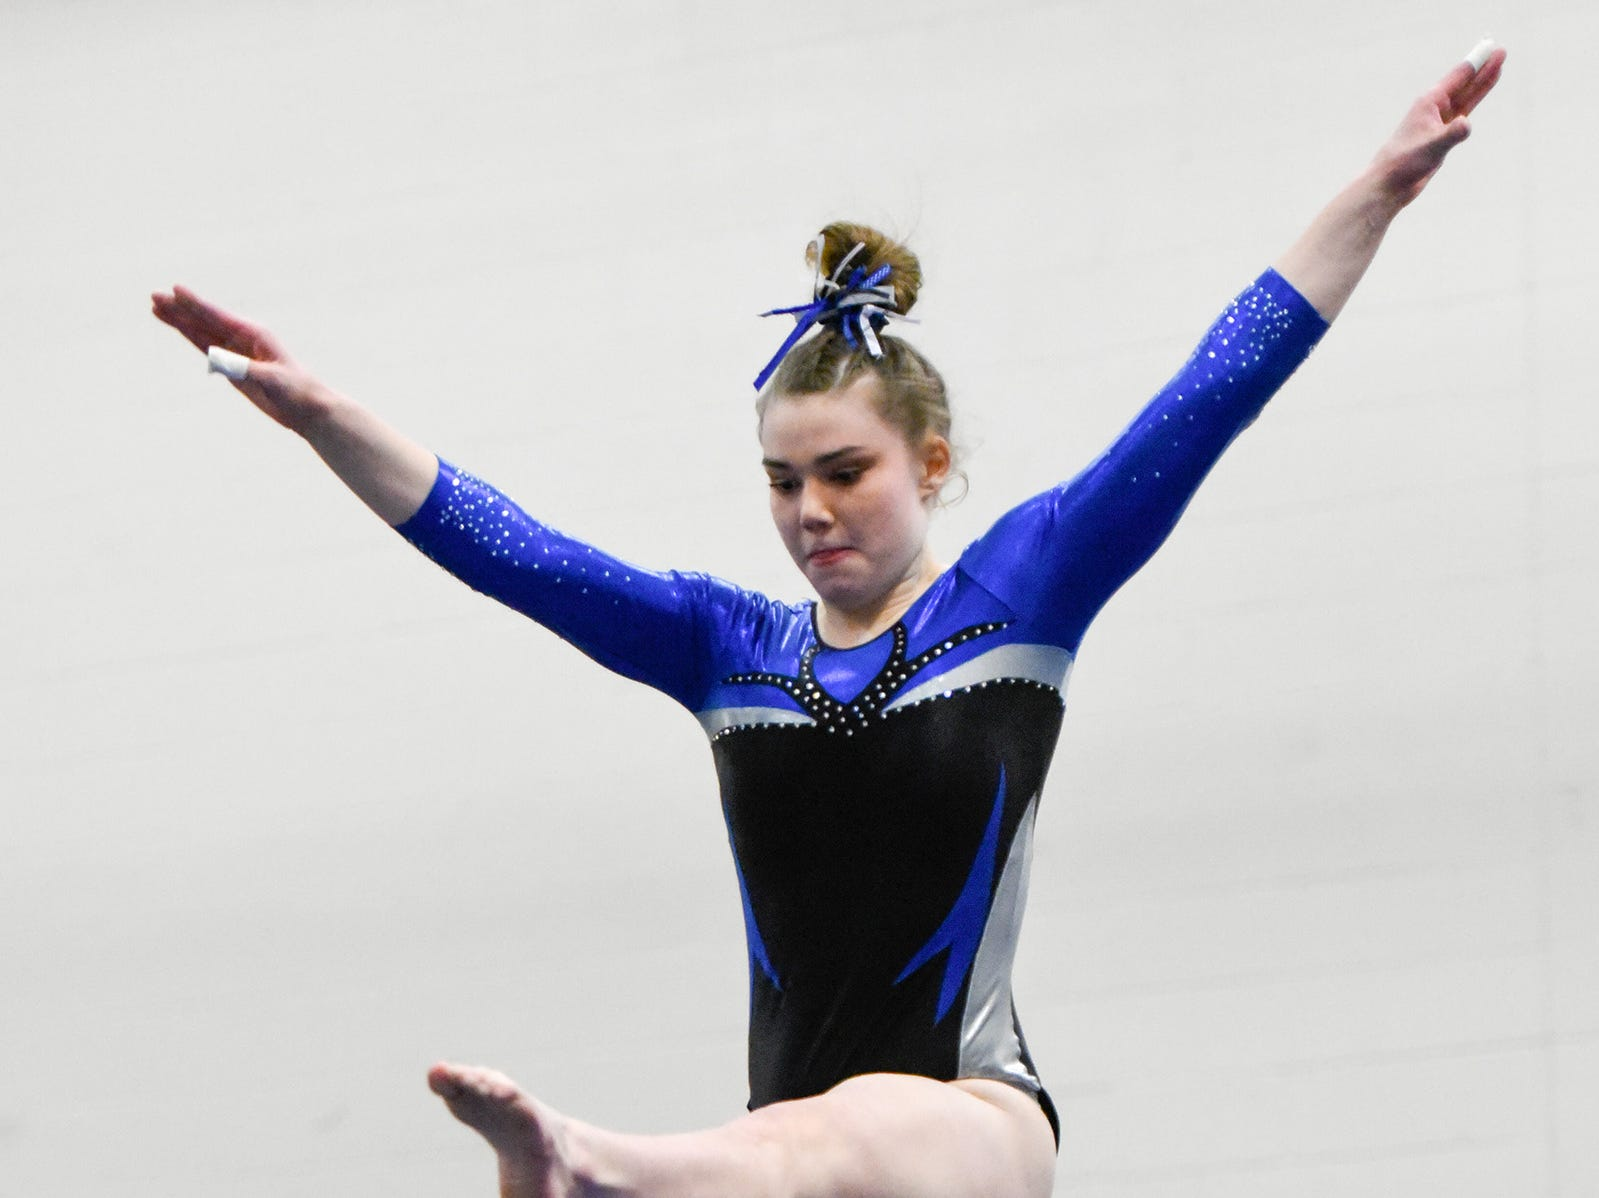 Sartell's Abigail Weber competes on the beam Thursday, Jan. 3, at the Sauk Rapids-Rice High School.